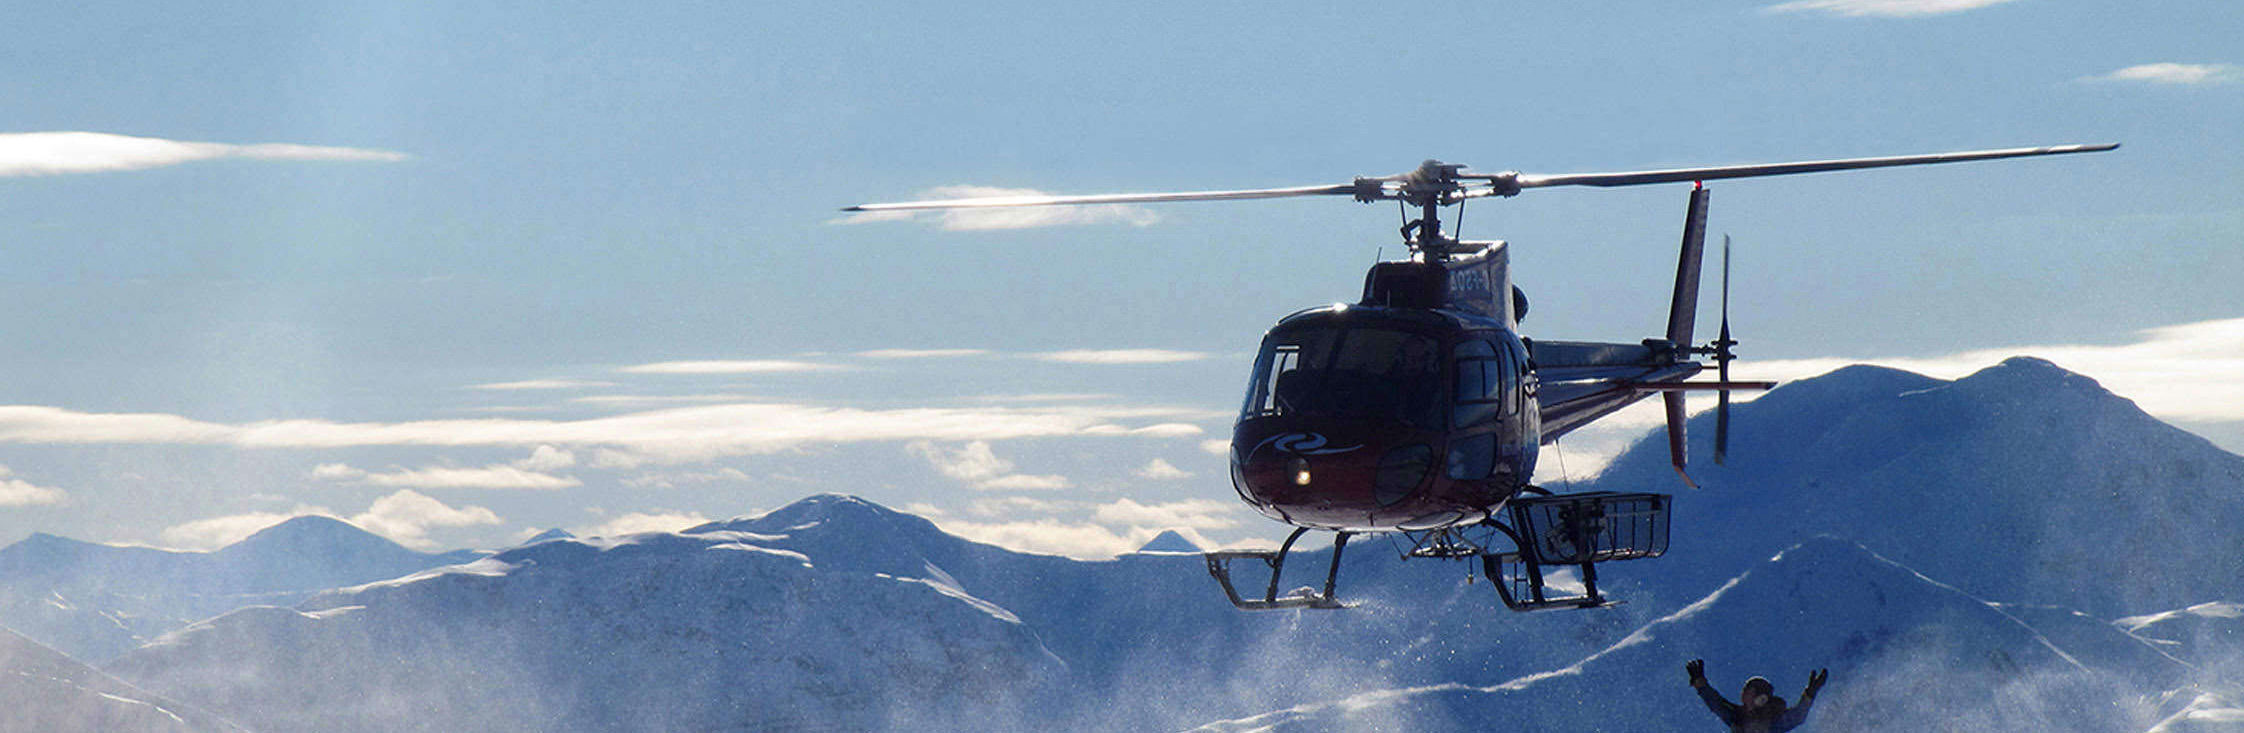 heliskiing_small_helicopter-departure